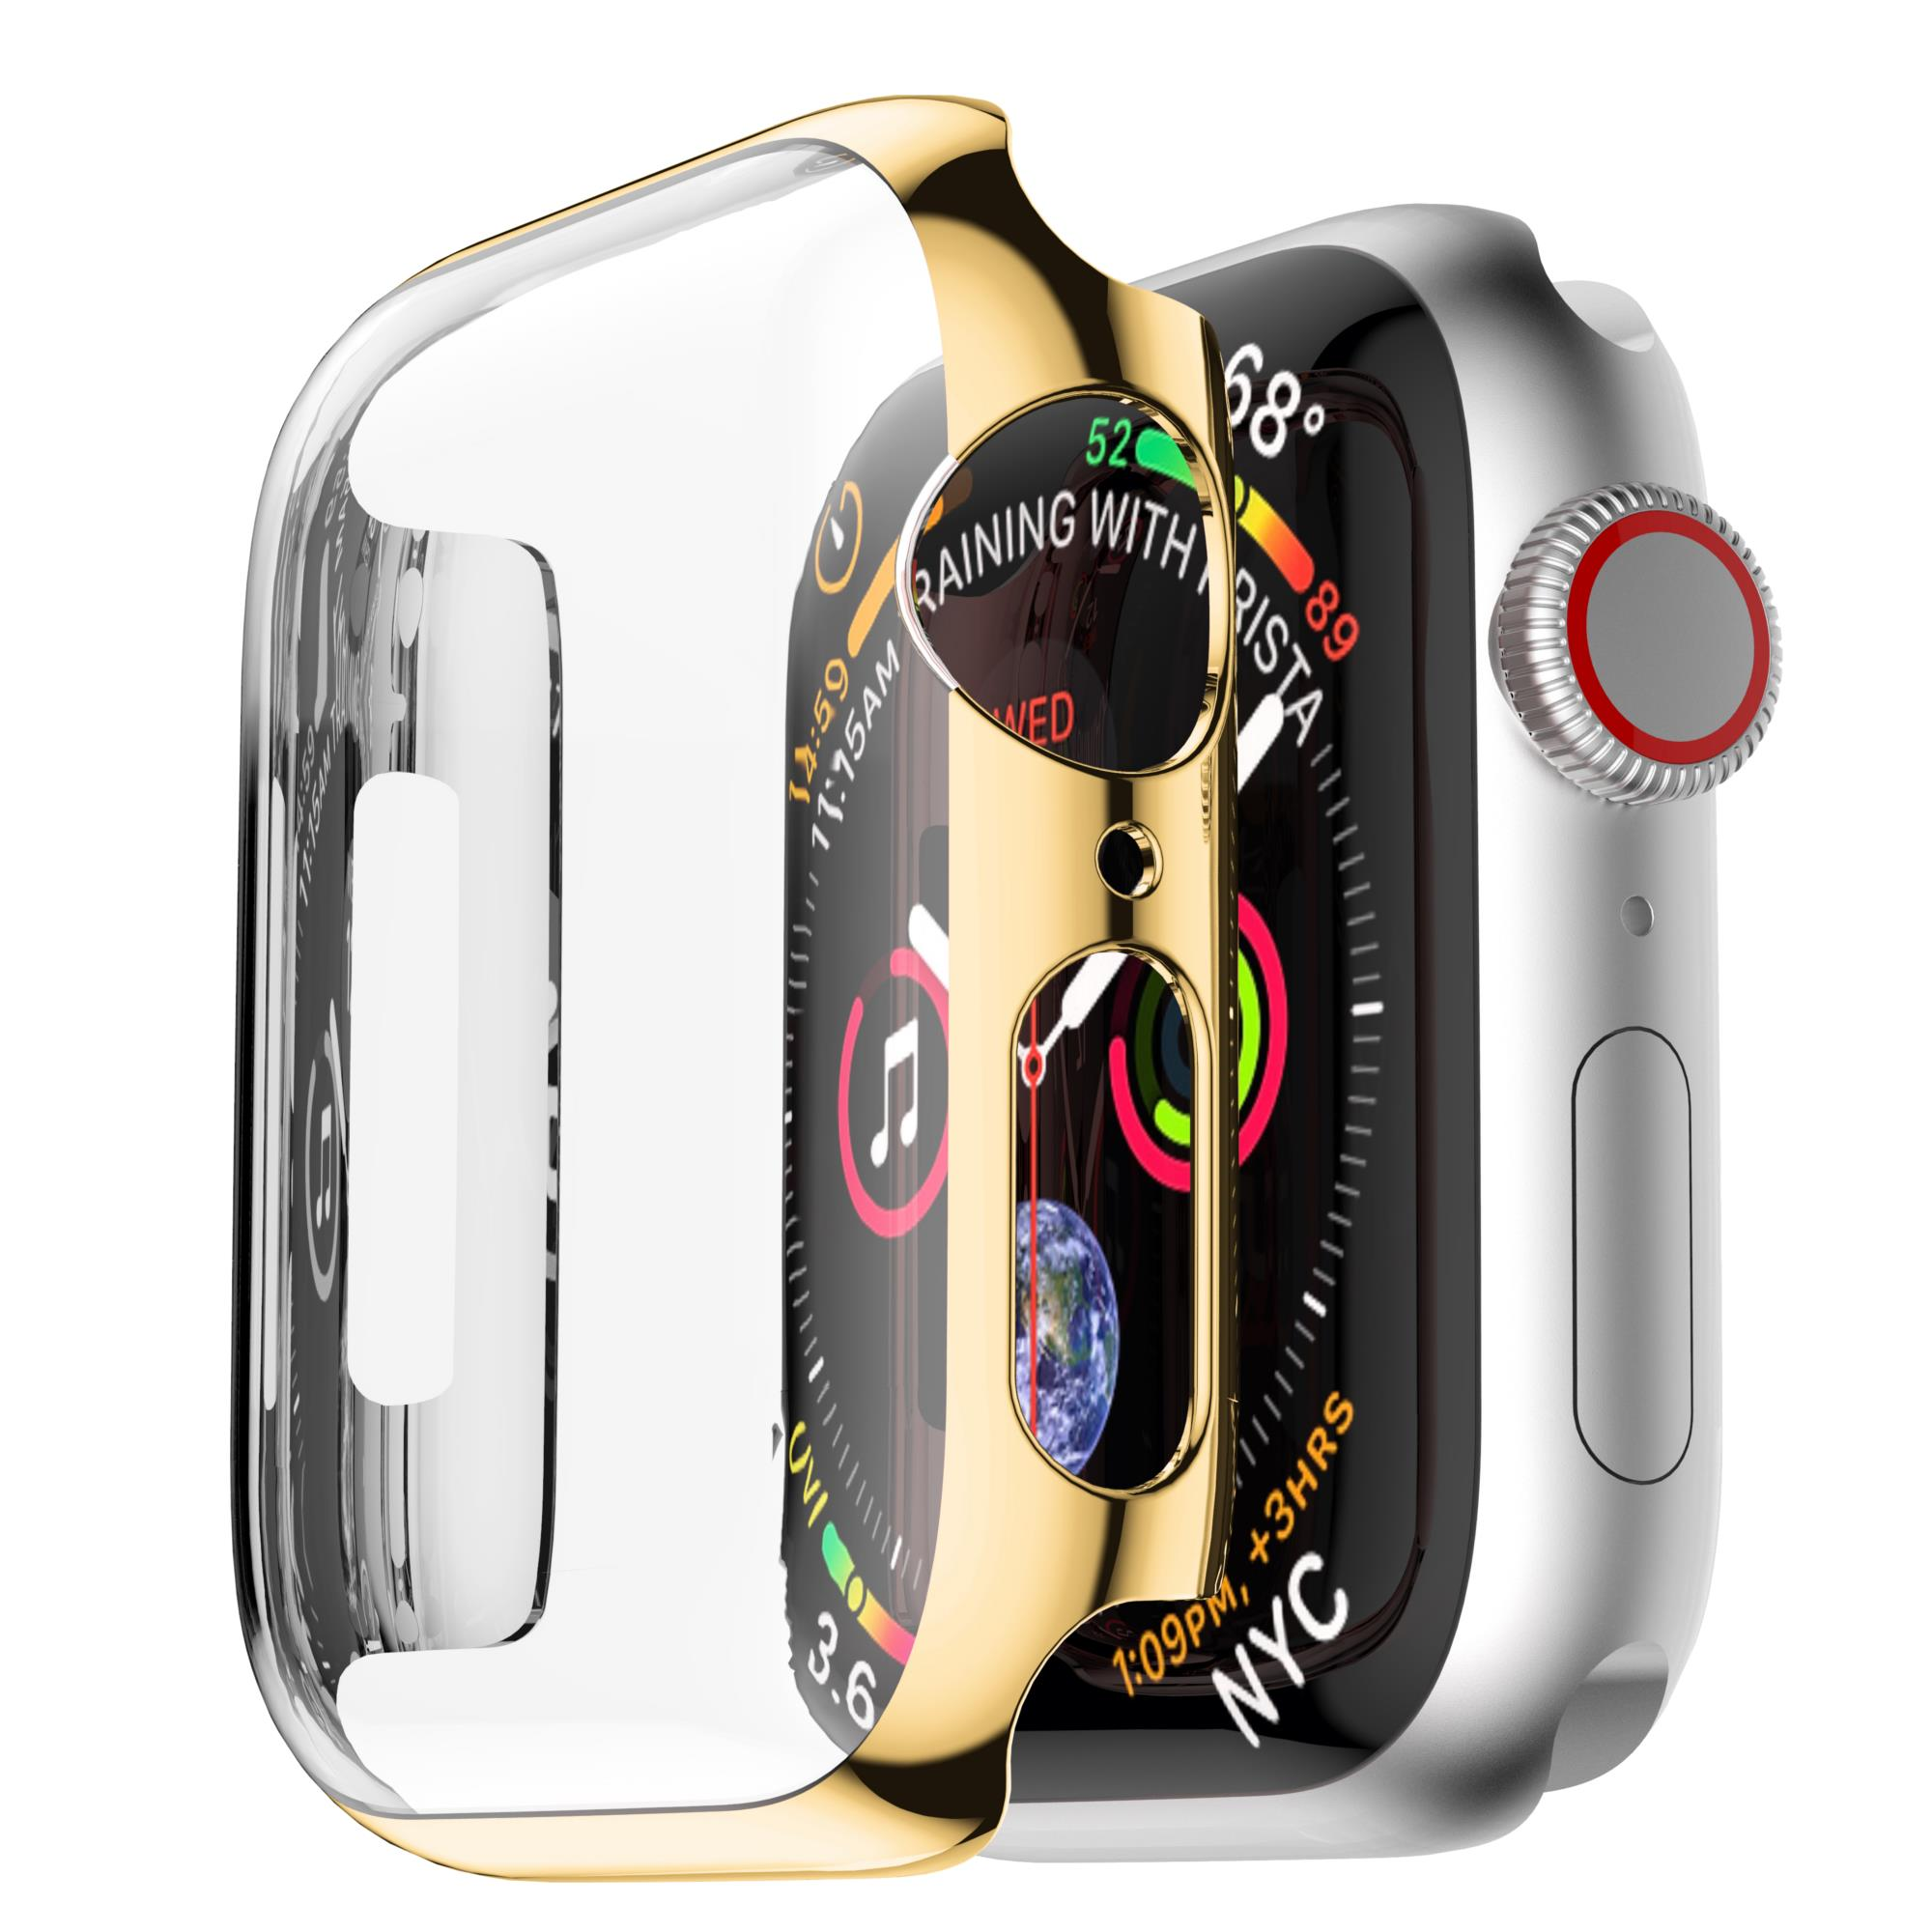 Bakeey Plating Touch Screen Hard PC Watch Cover For Apple Watch Series 4 40mm/44mm - 1